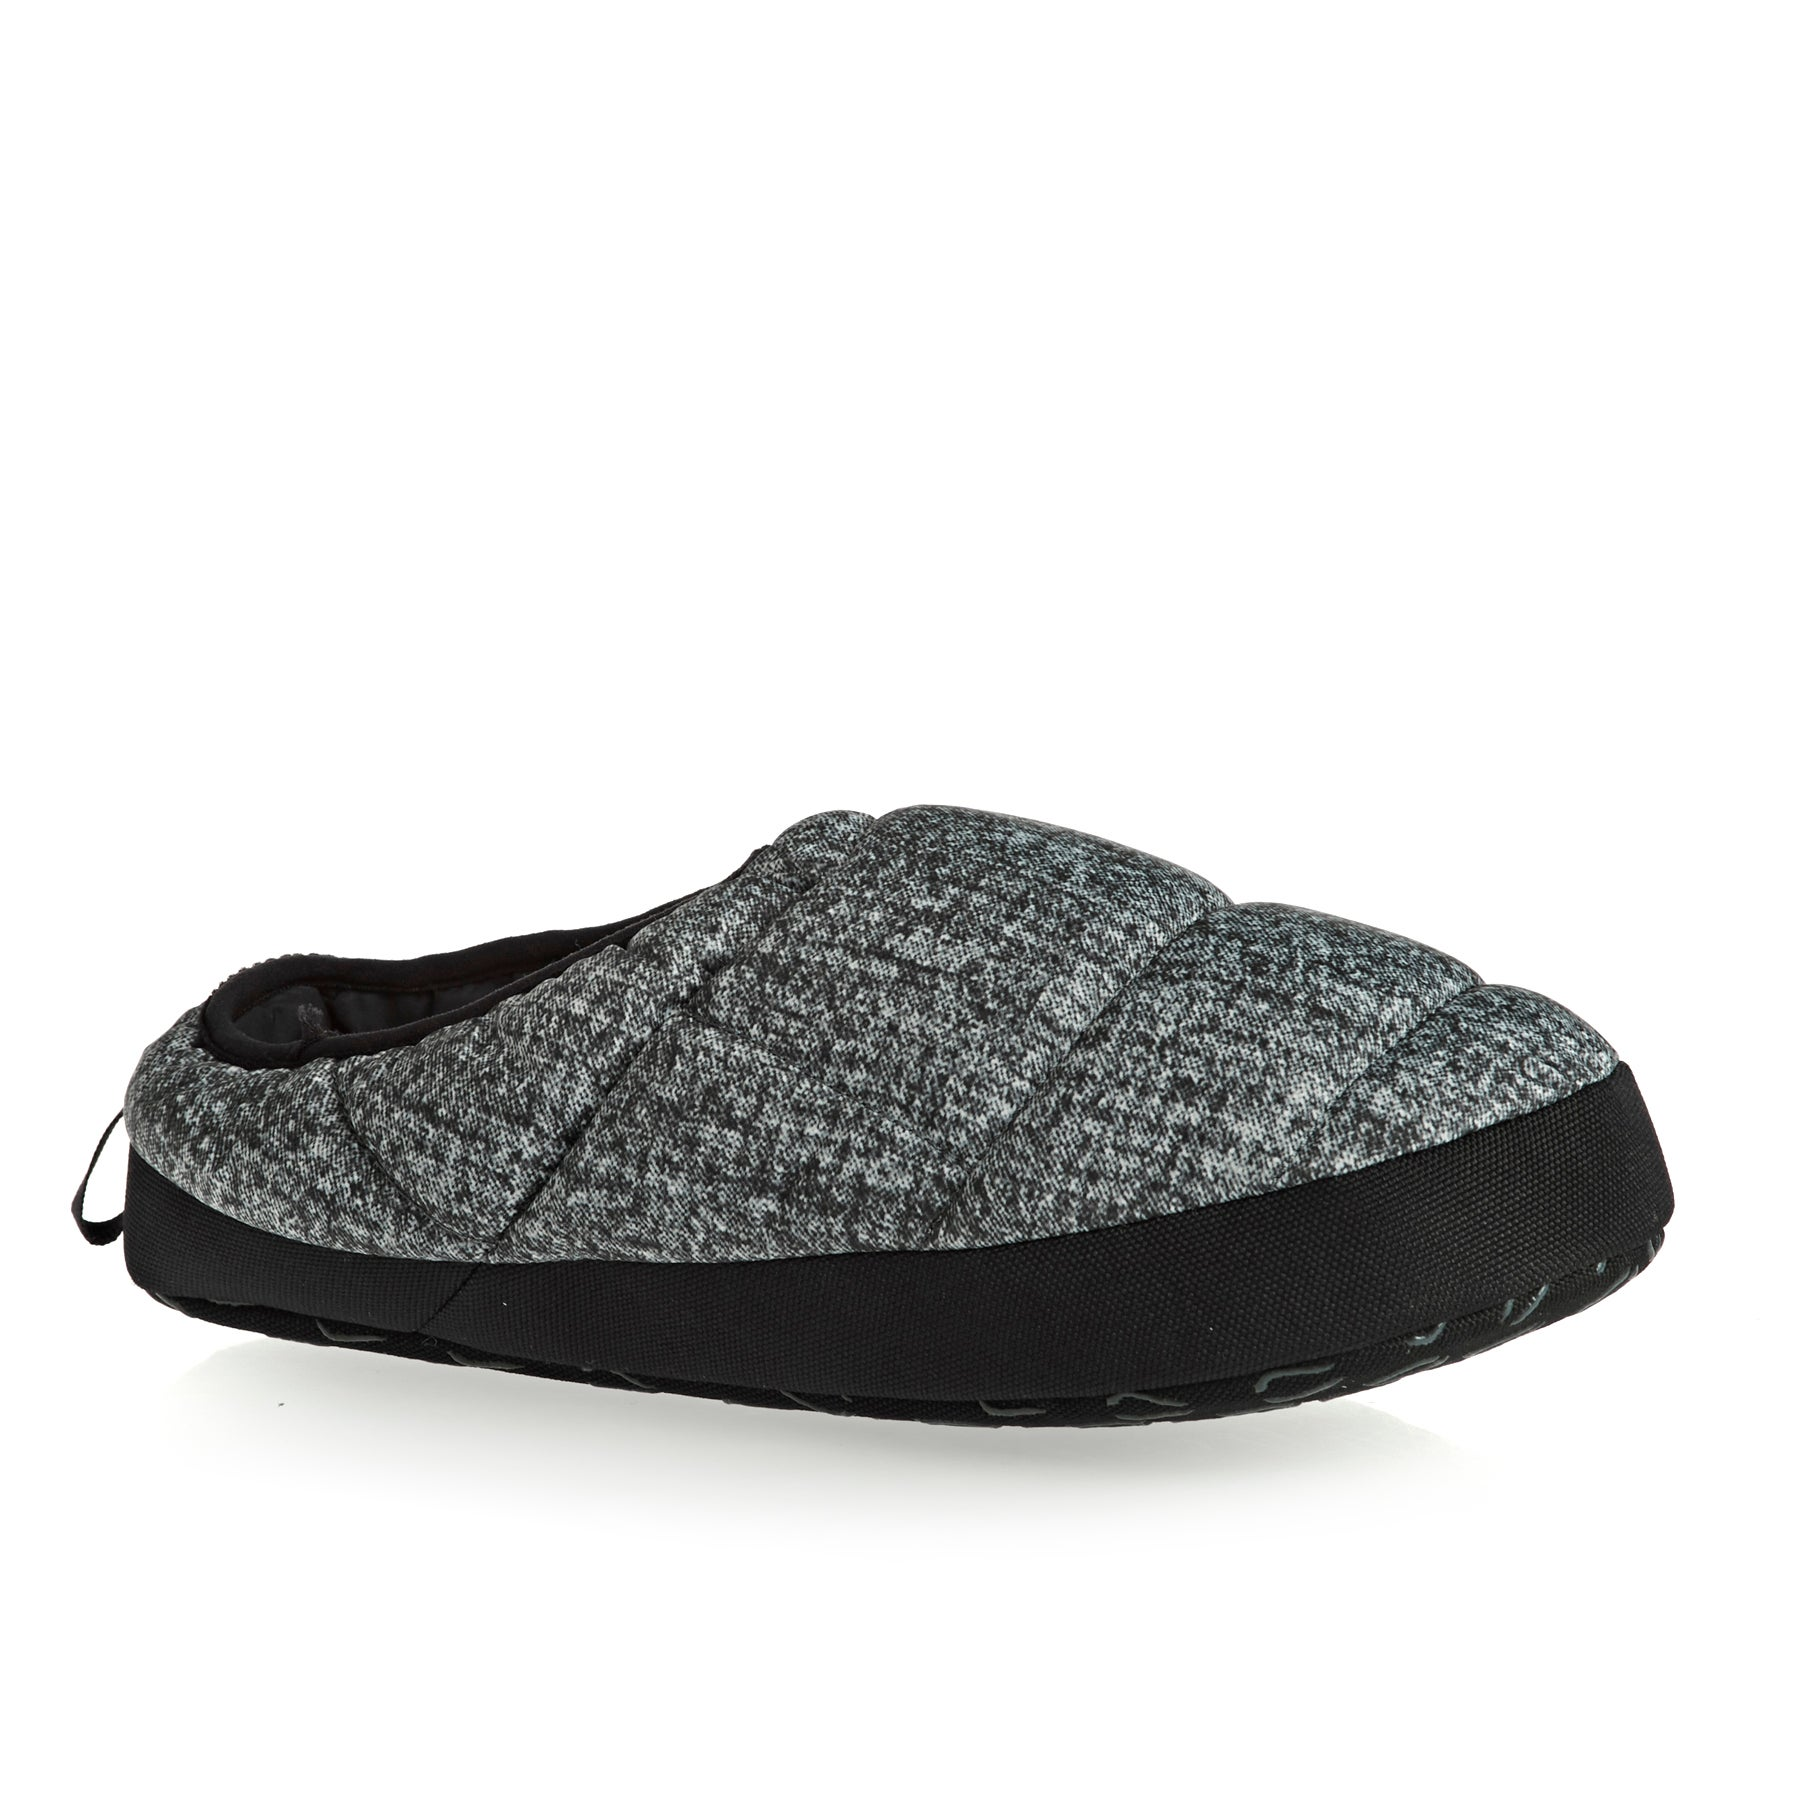 5ab934a01 North Face Nuptse Tent Mule III Slippers - Free Delivery options on ...